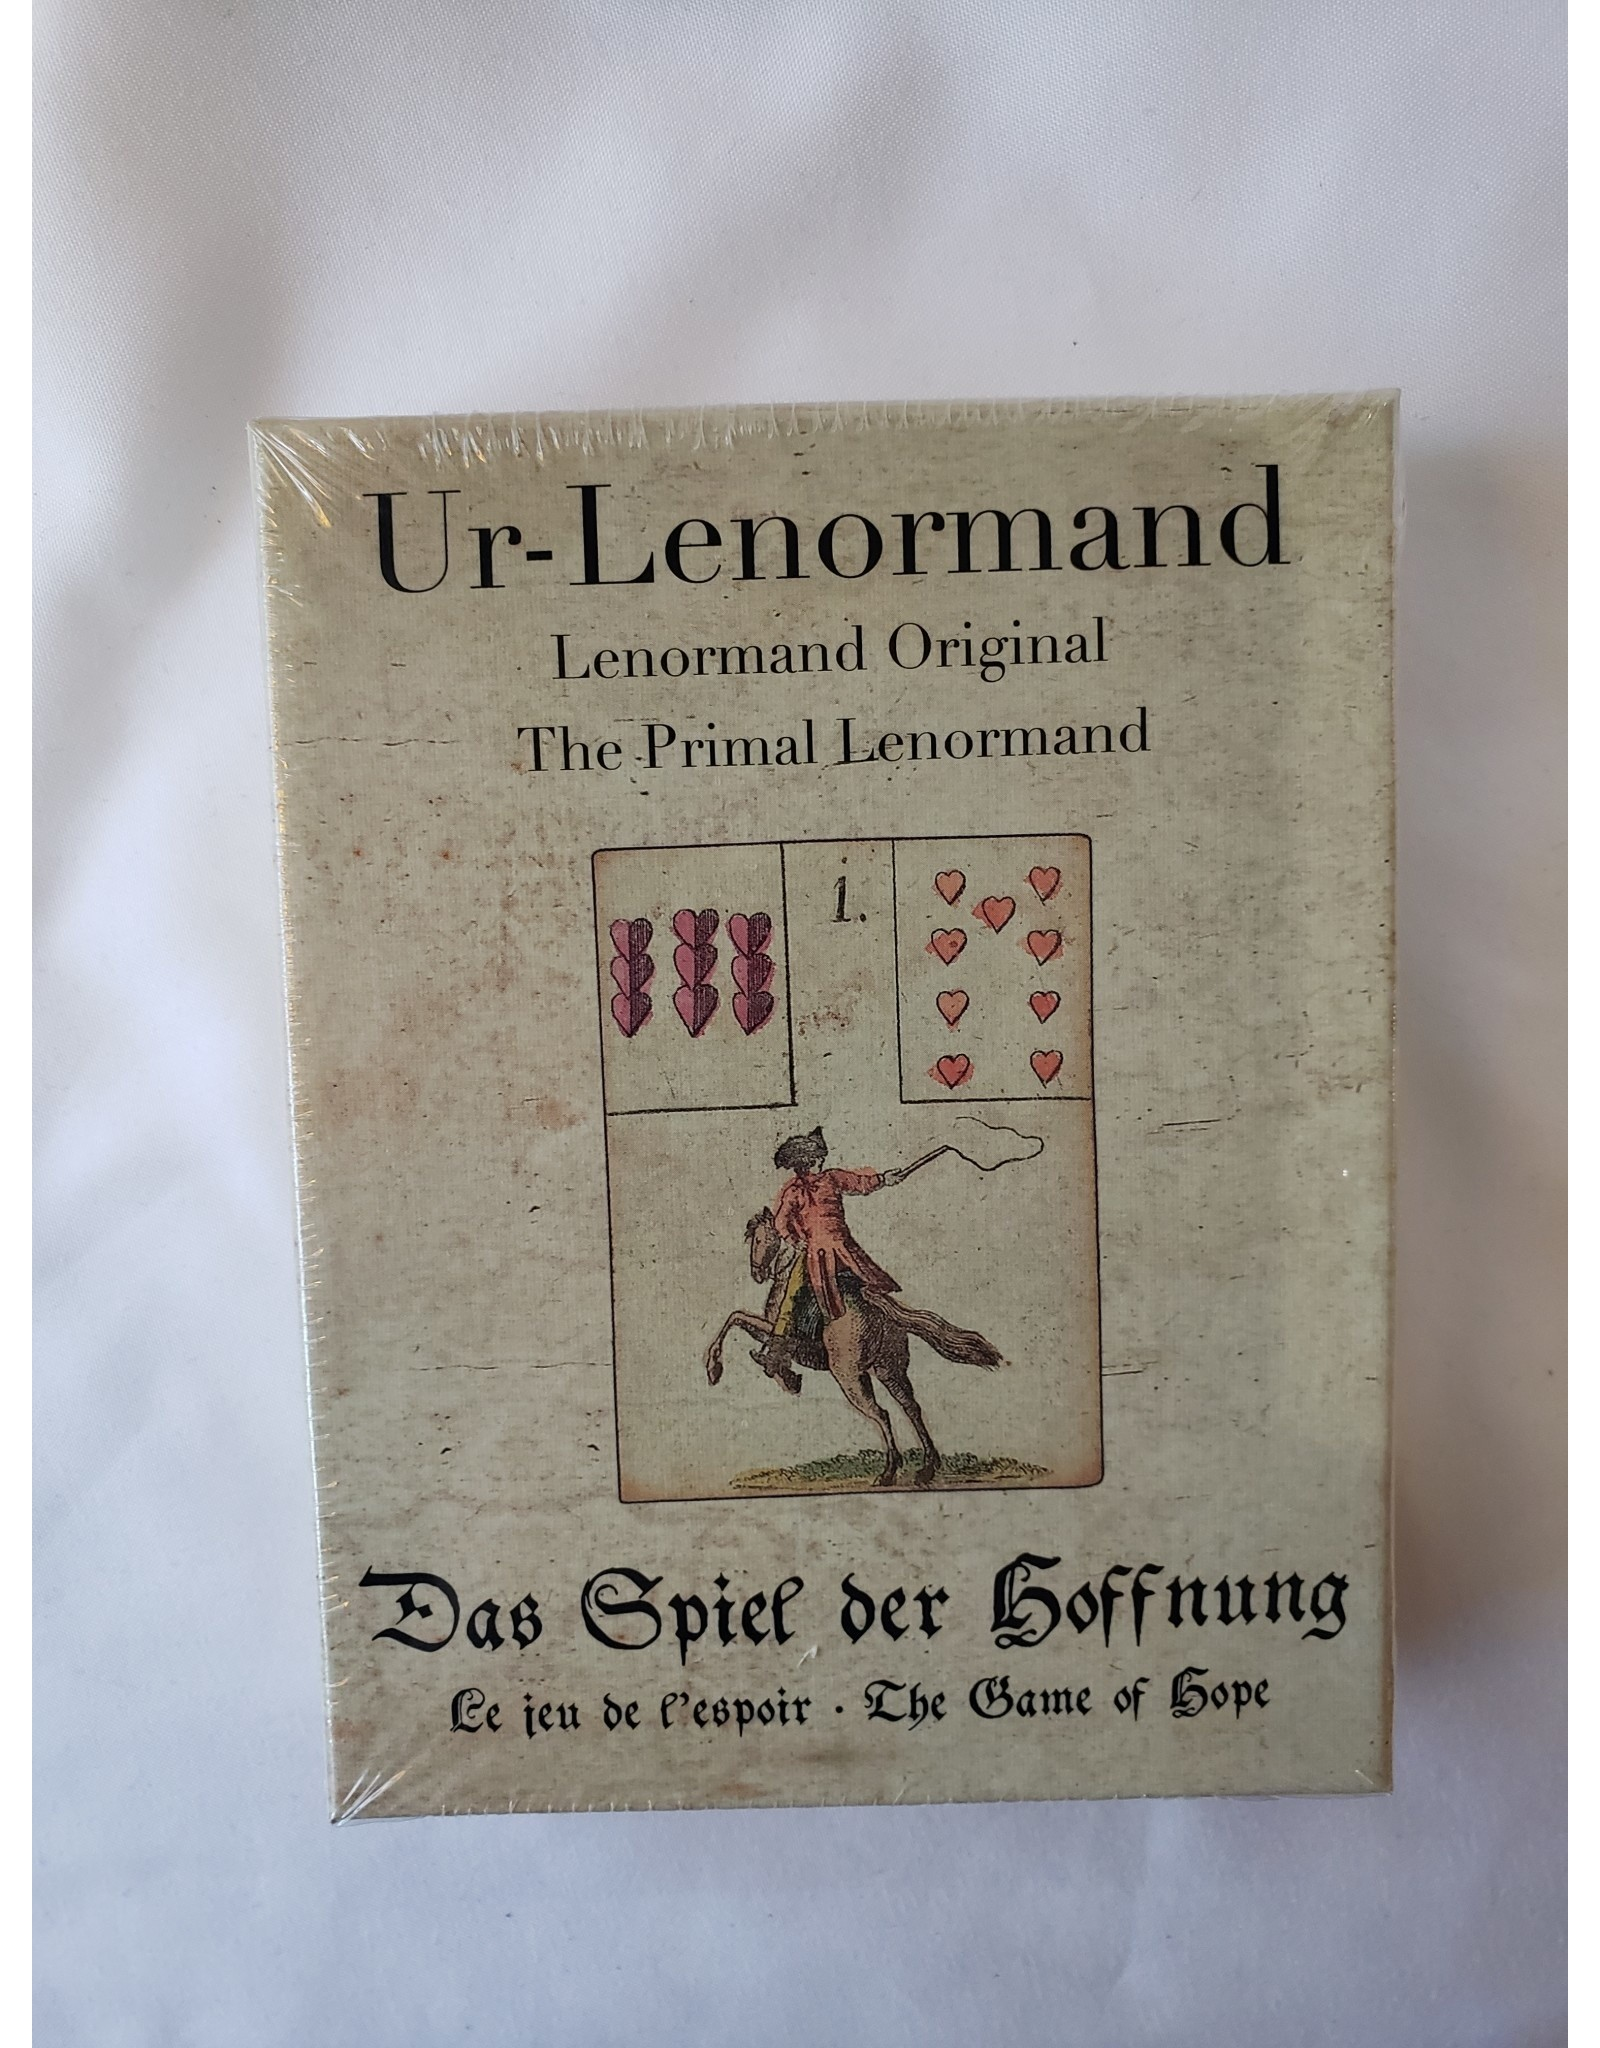 Primal Lenormand - The Game of Hope